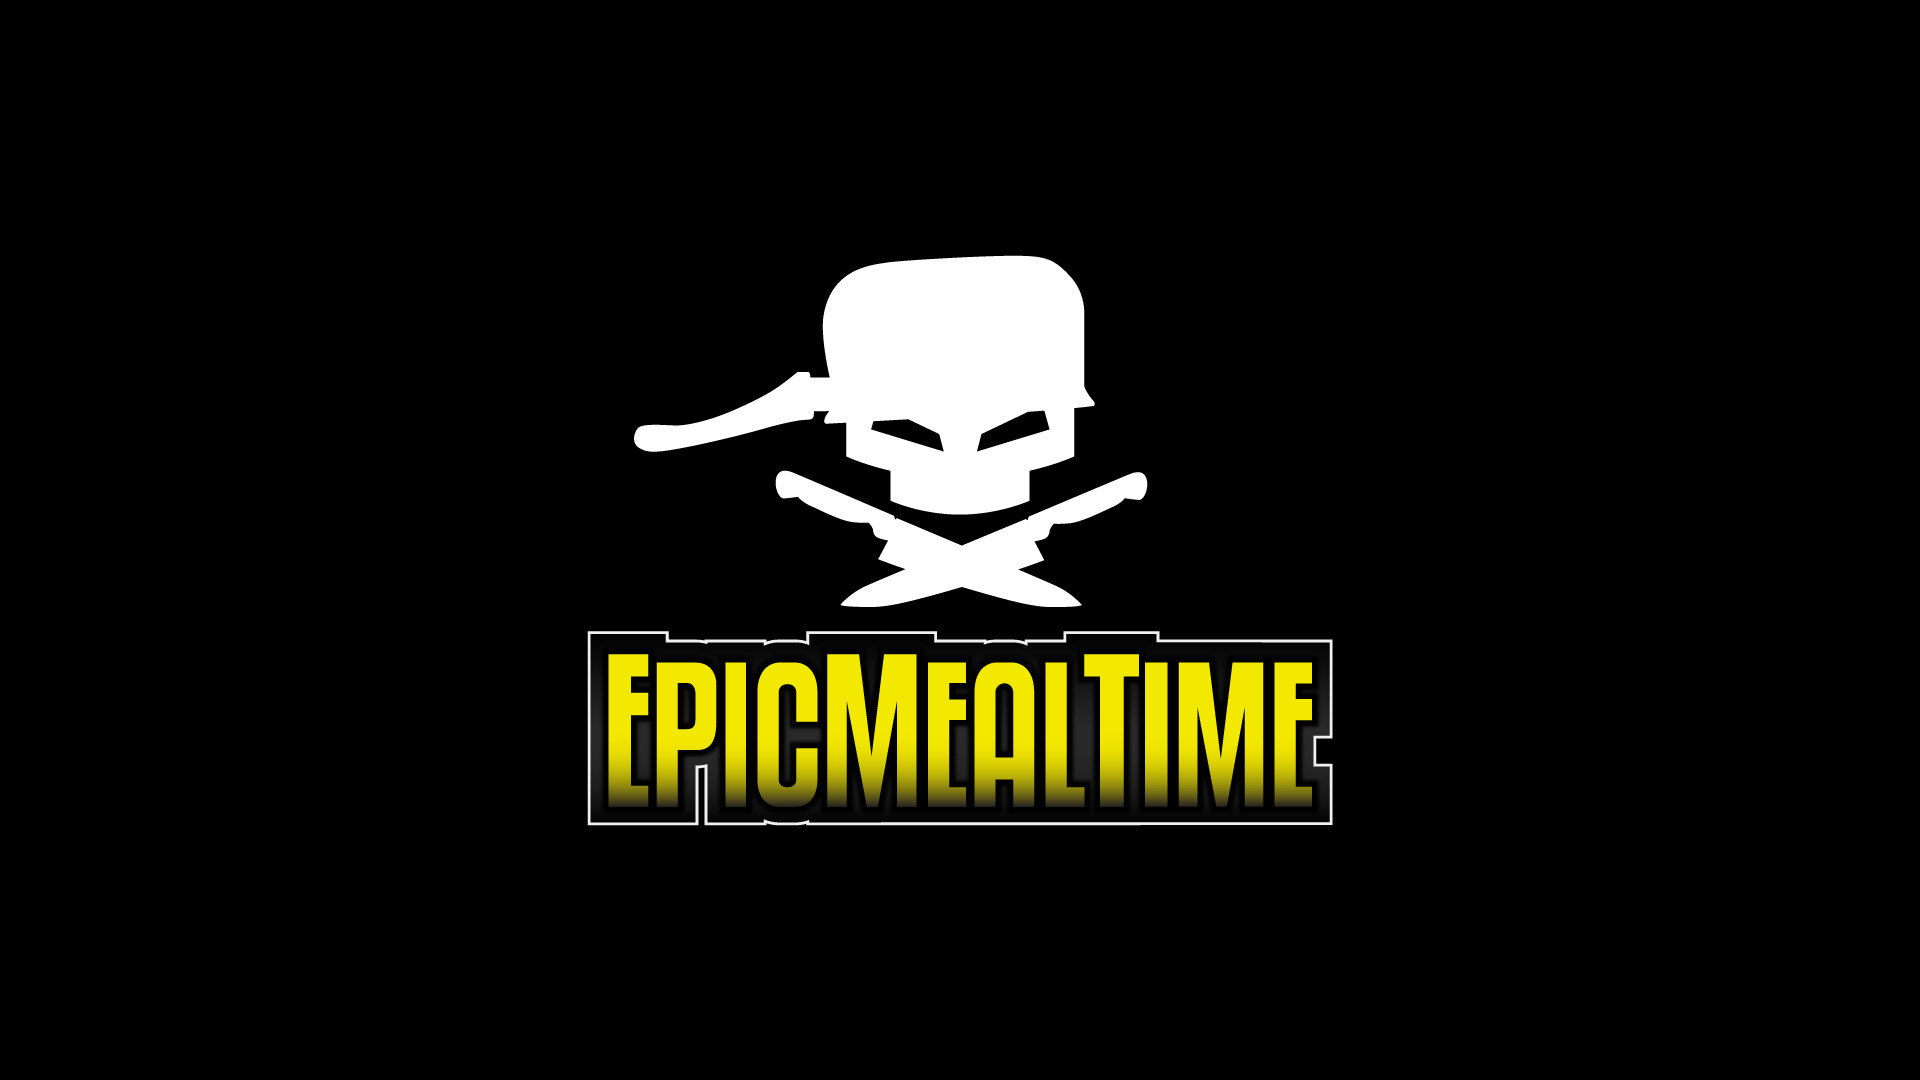 epic meal time City HD Wallpaper